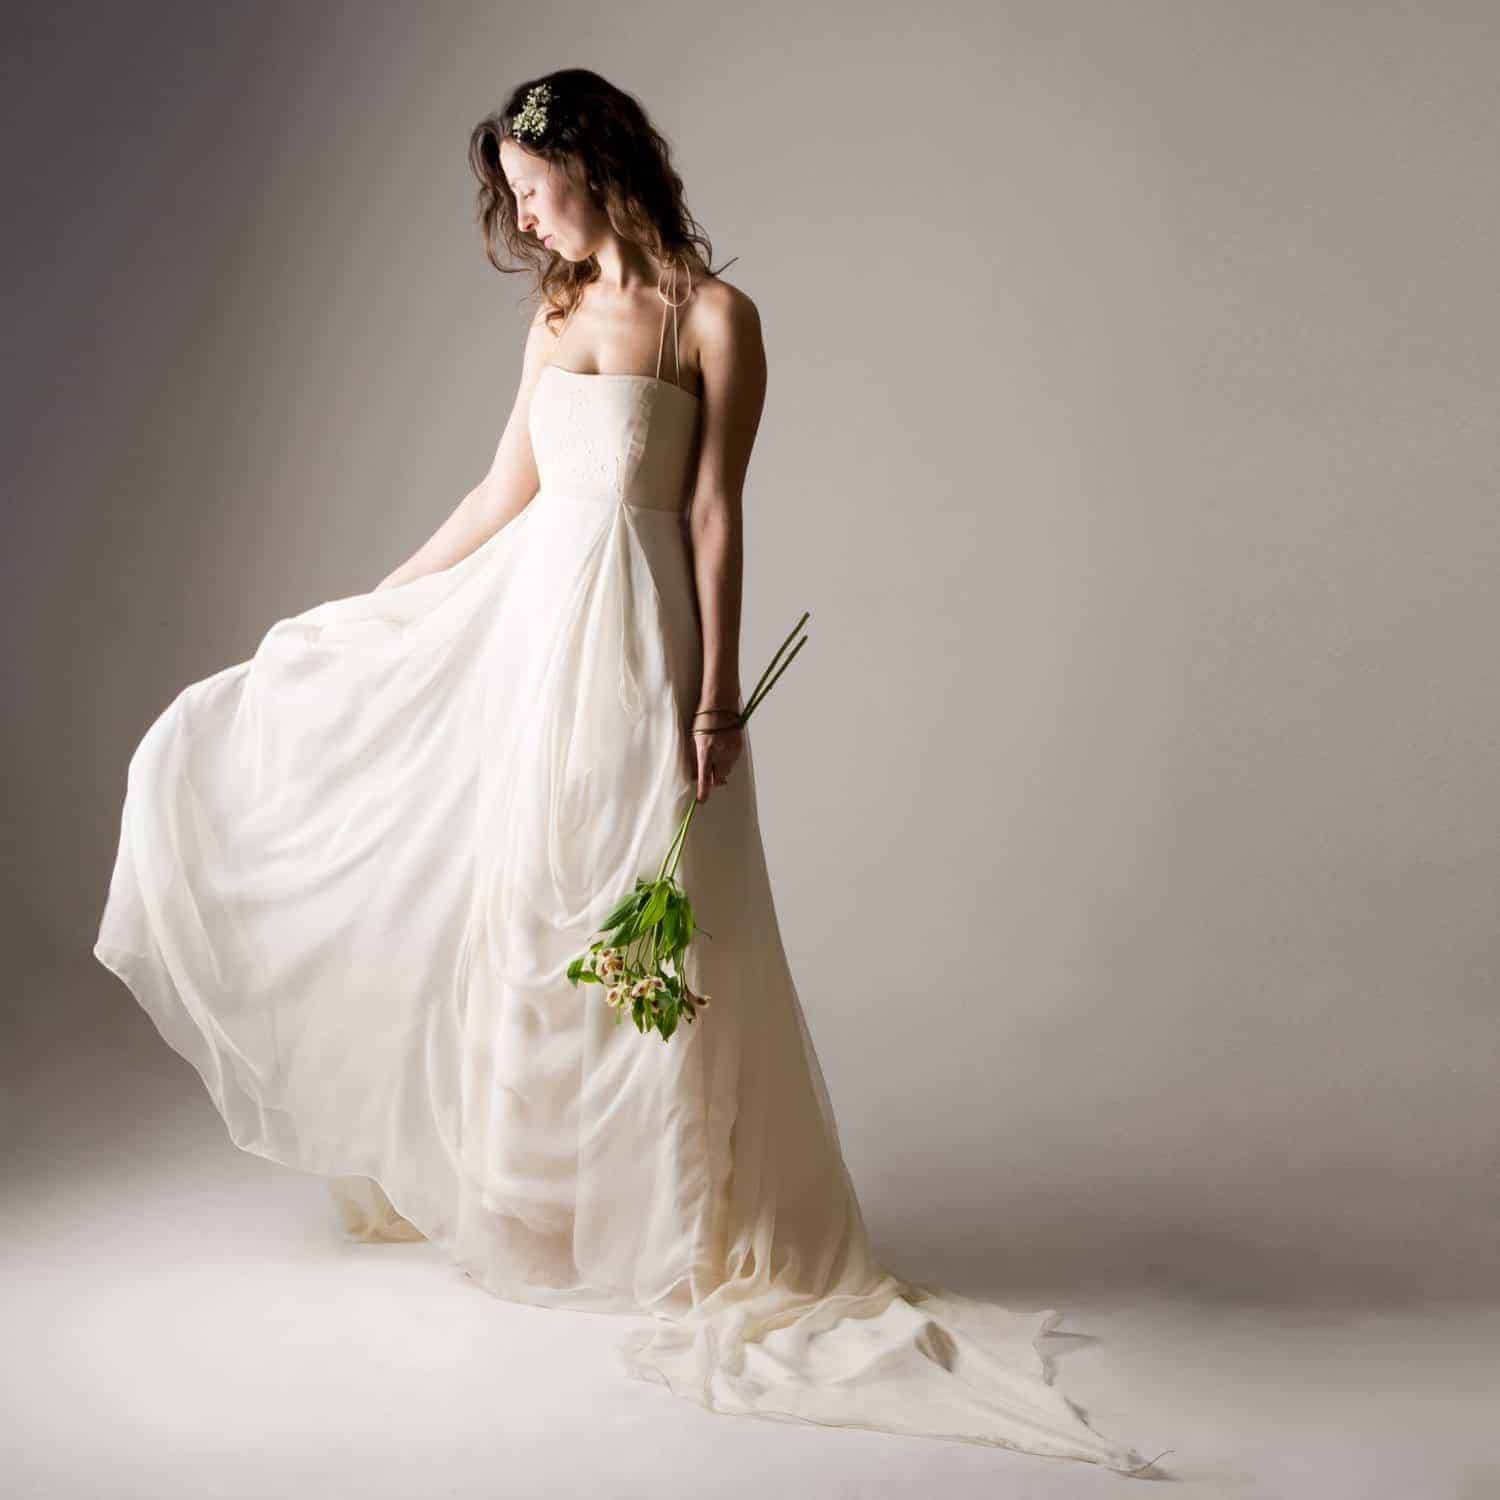 Backless Wedding Dresses: Fairy Backless Wedding Dress